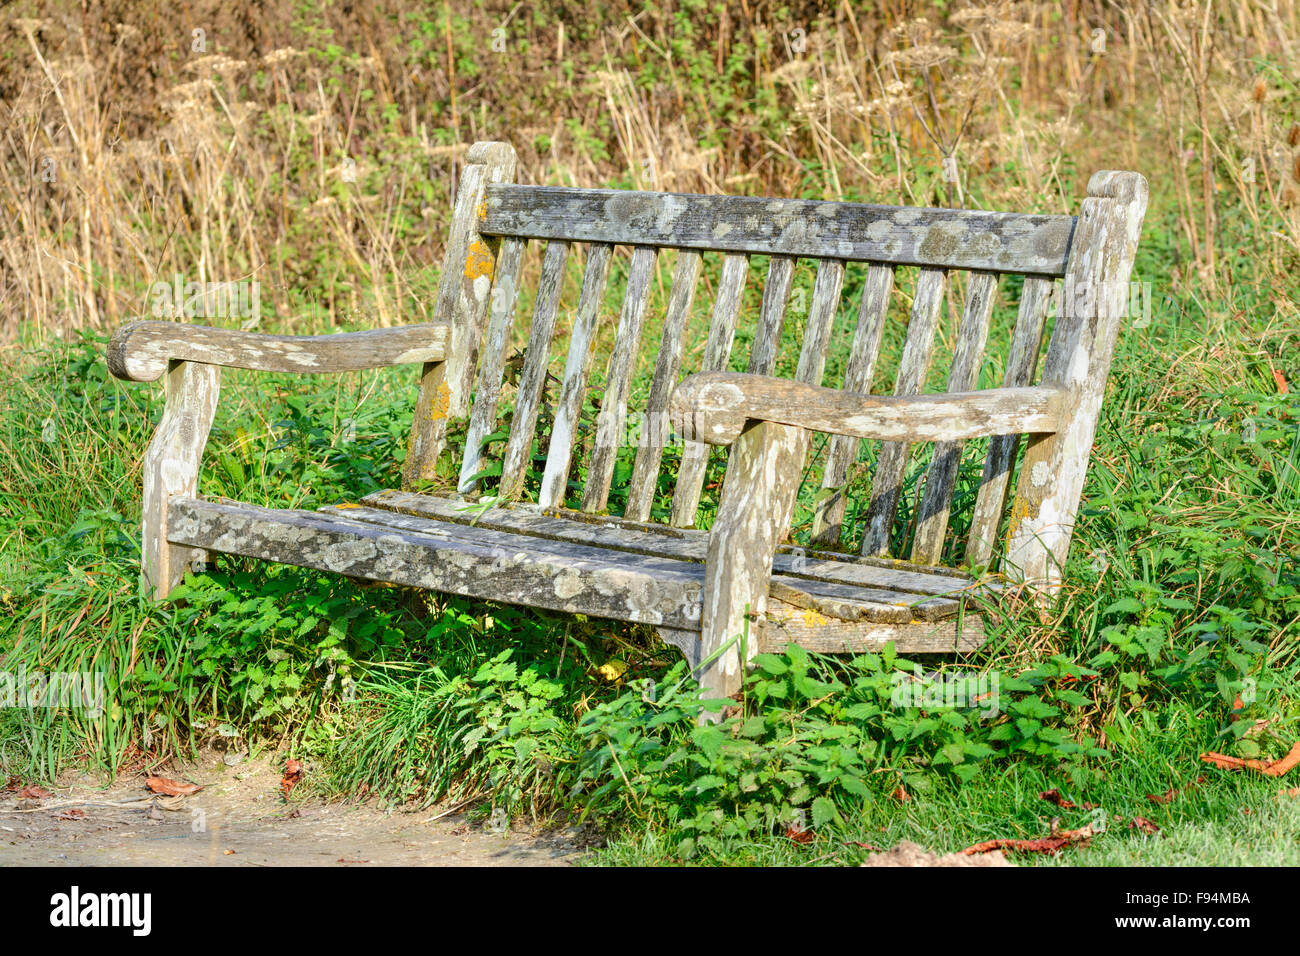 Rotting Old Wooden Bench In A Park.   Stock Image